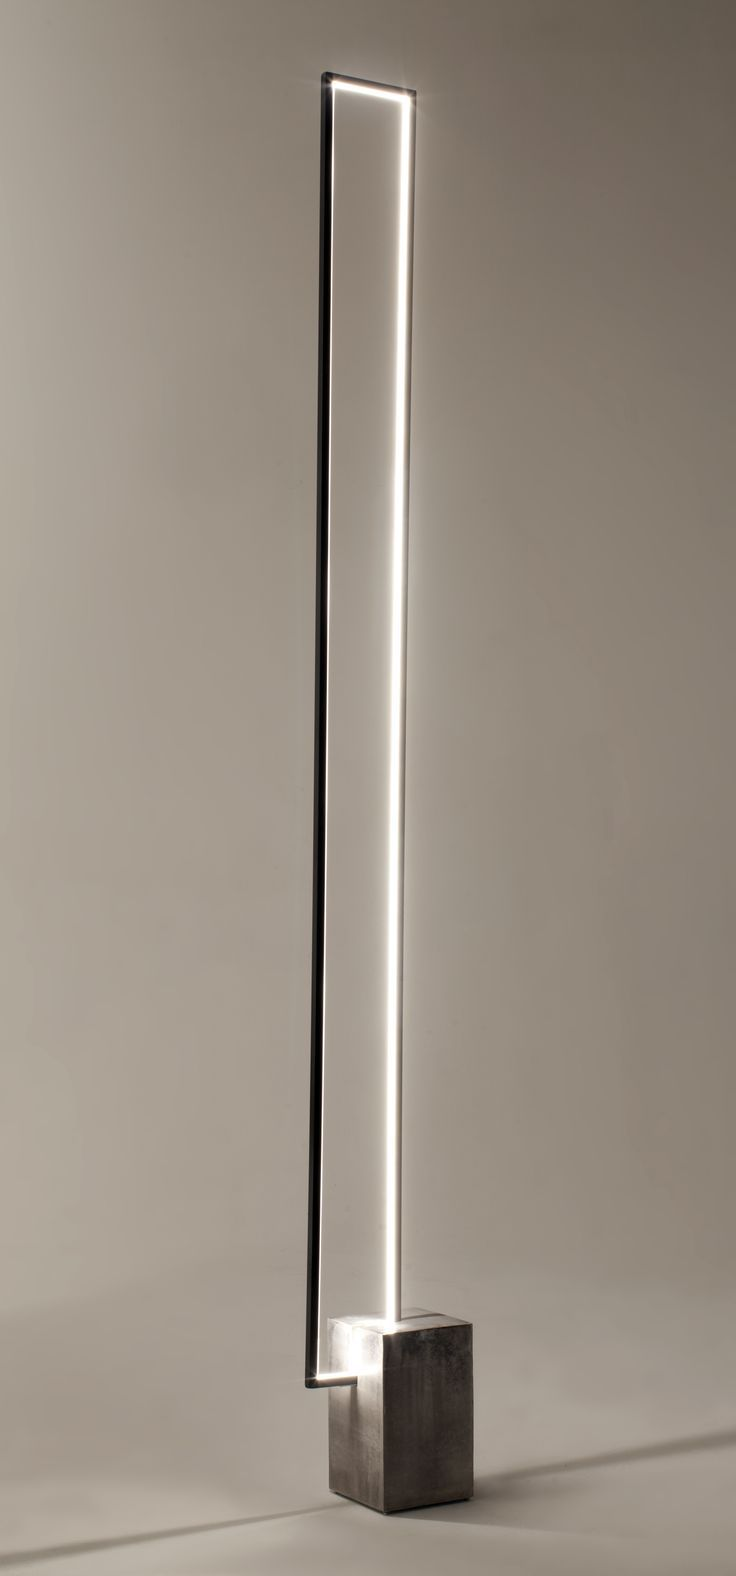 the mire a floor lamp with a clear led light strip inside a rectangular metal frame